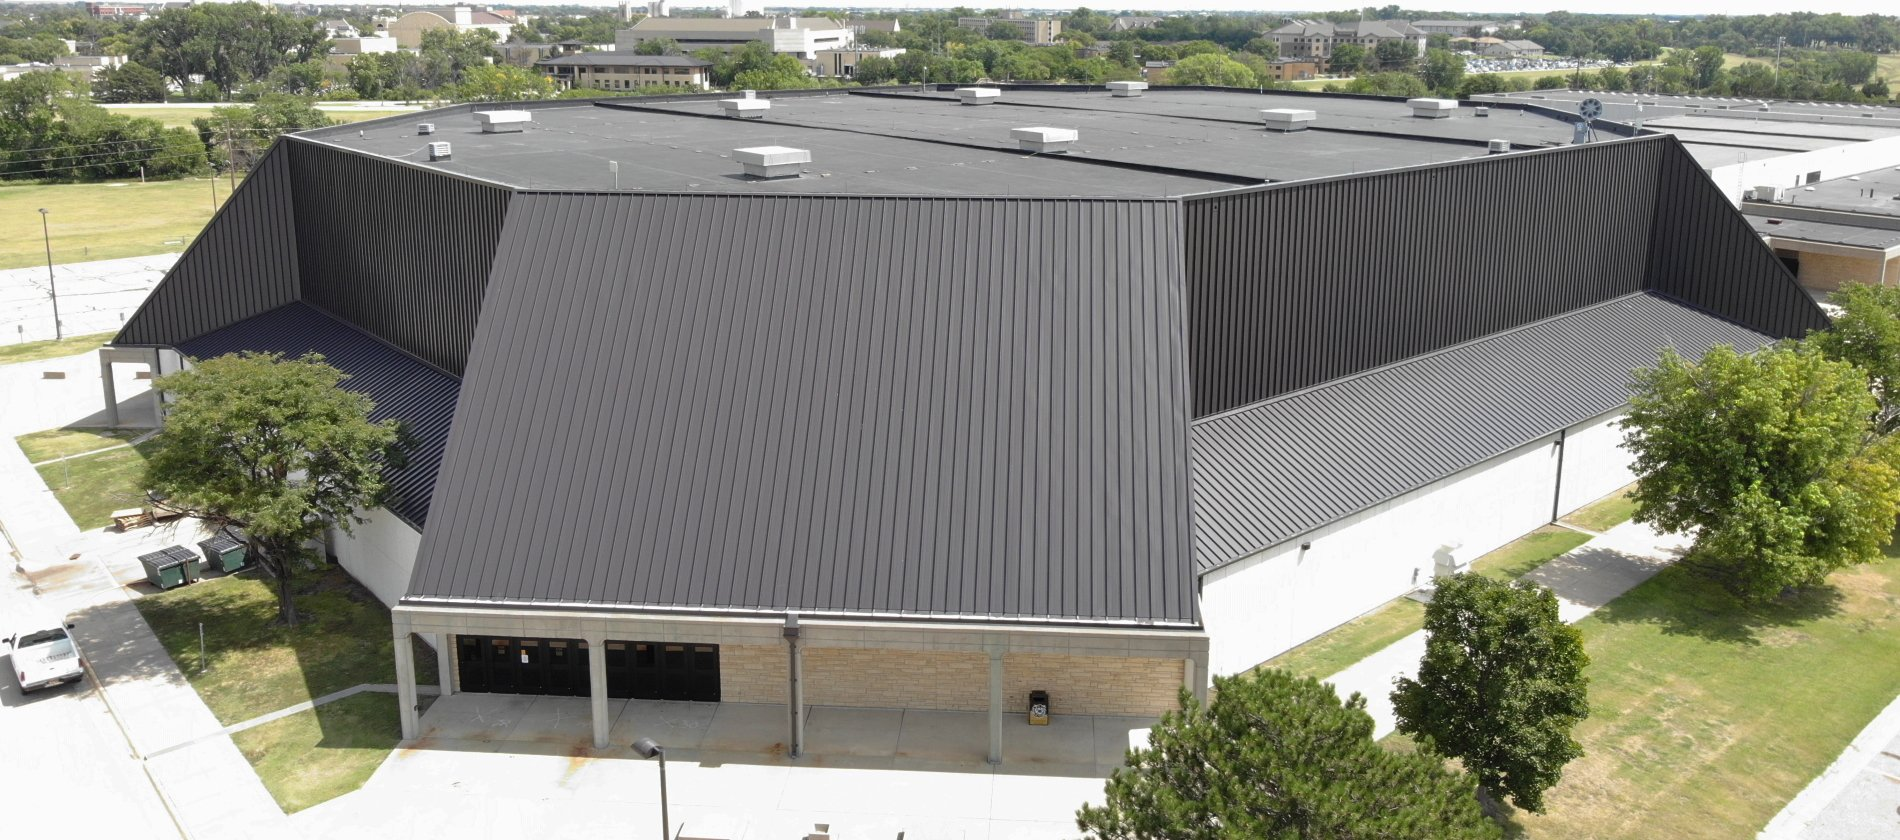 238T Symmetrical Panel Recovers Coliseum Roof and Wall